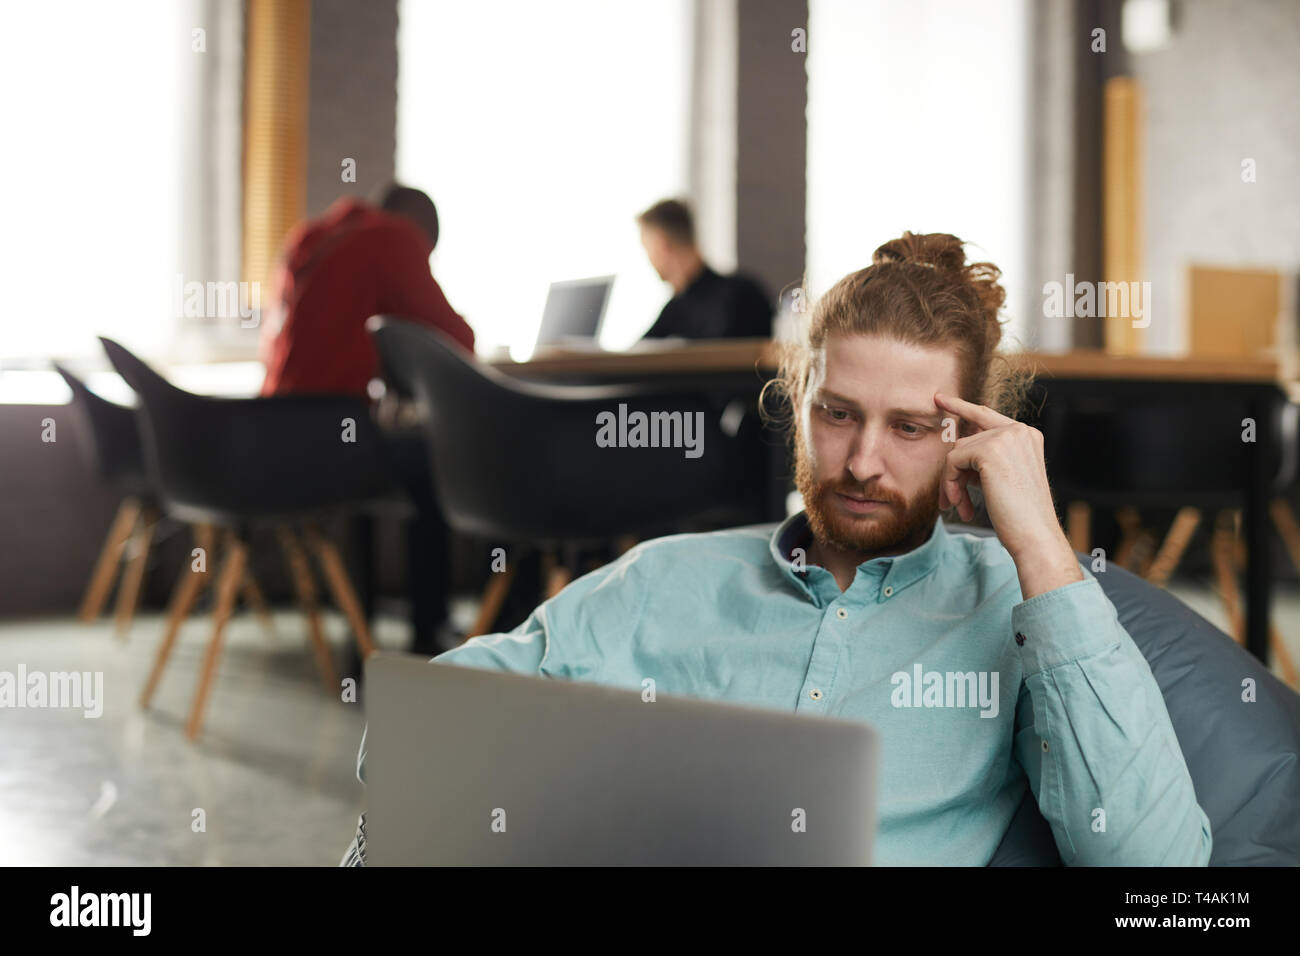 IT Specialist Working in Bean bag - Stock Image